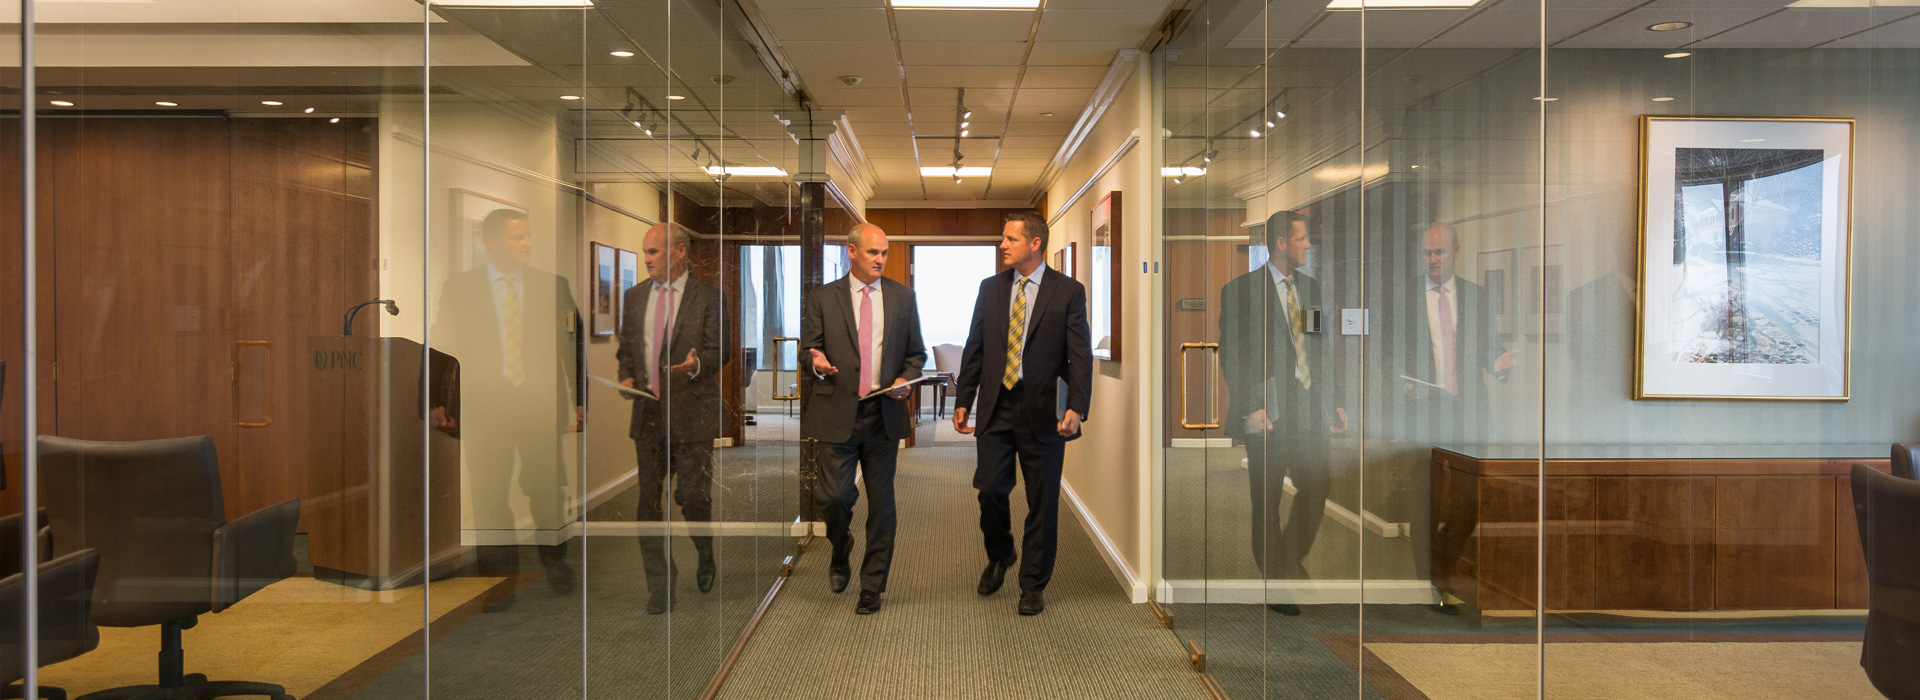 Santora CPAs in hallway discuss the connections between healthcare providers, Delaware holding companies and closely-held businesses